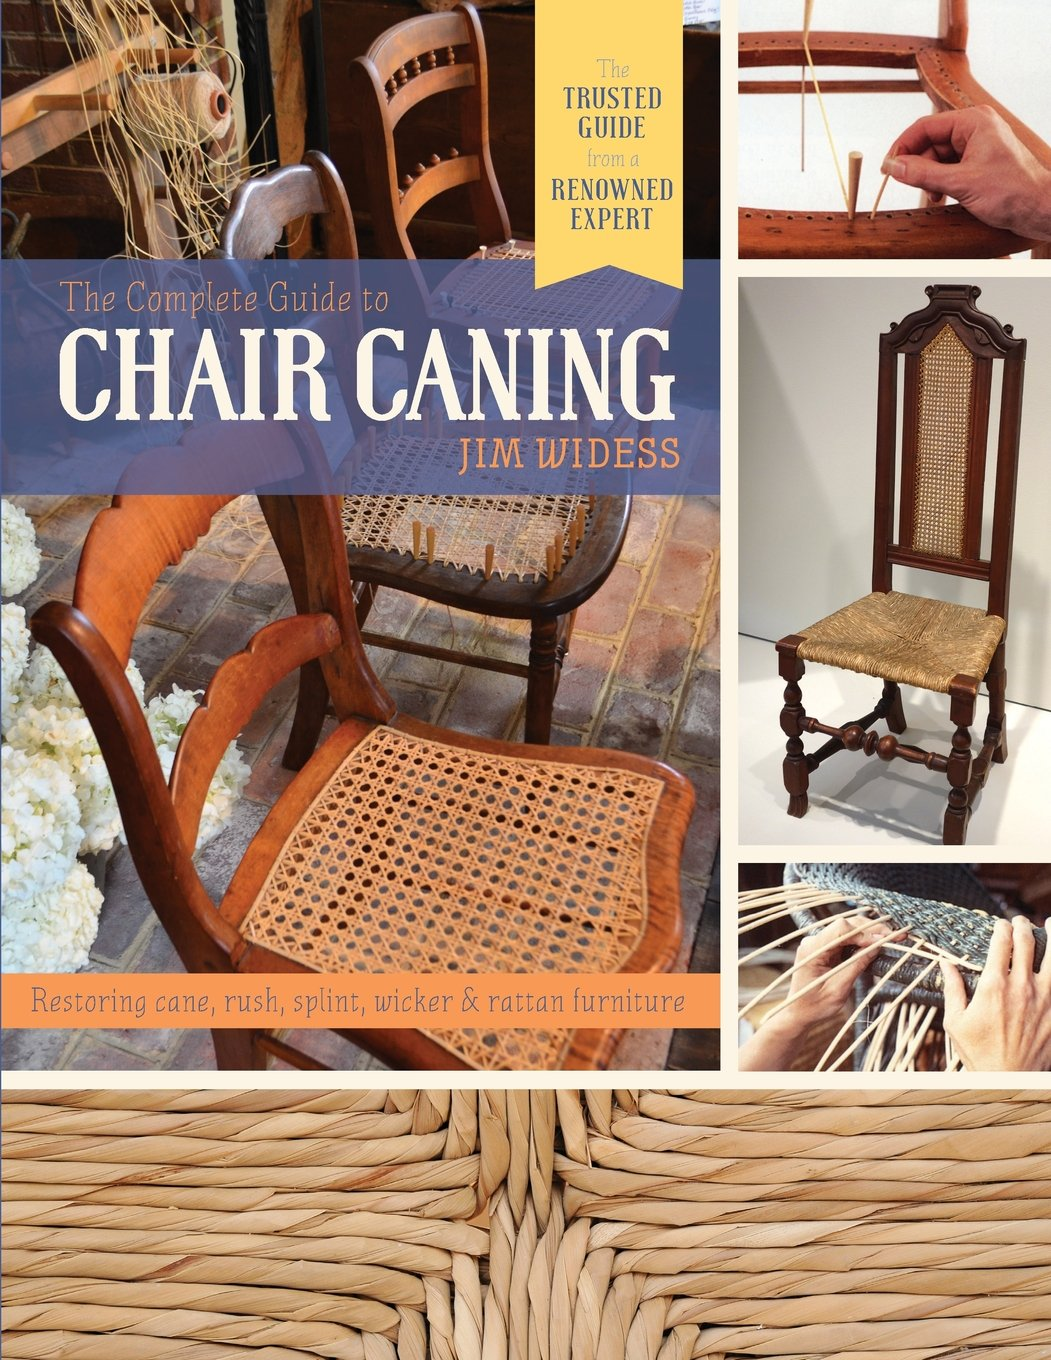 The Complete Guide To Chair Caning: Restoring Cane, Rush, Splint, Wicker U0026  Rattan Furniture: Amazon.co.uk: James Widess: 9781626546240: Books